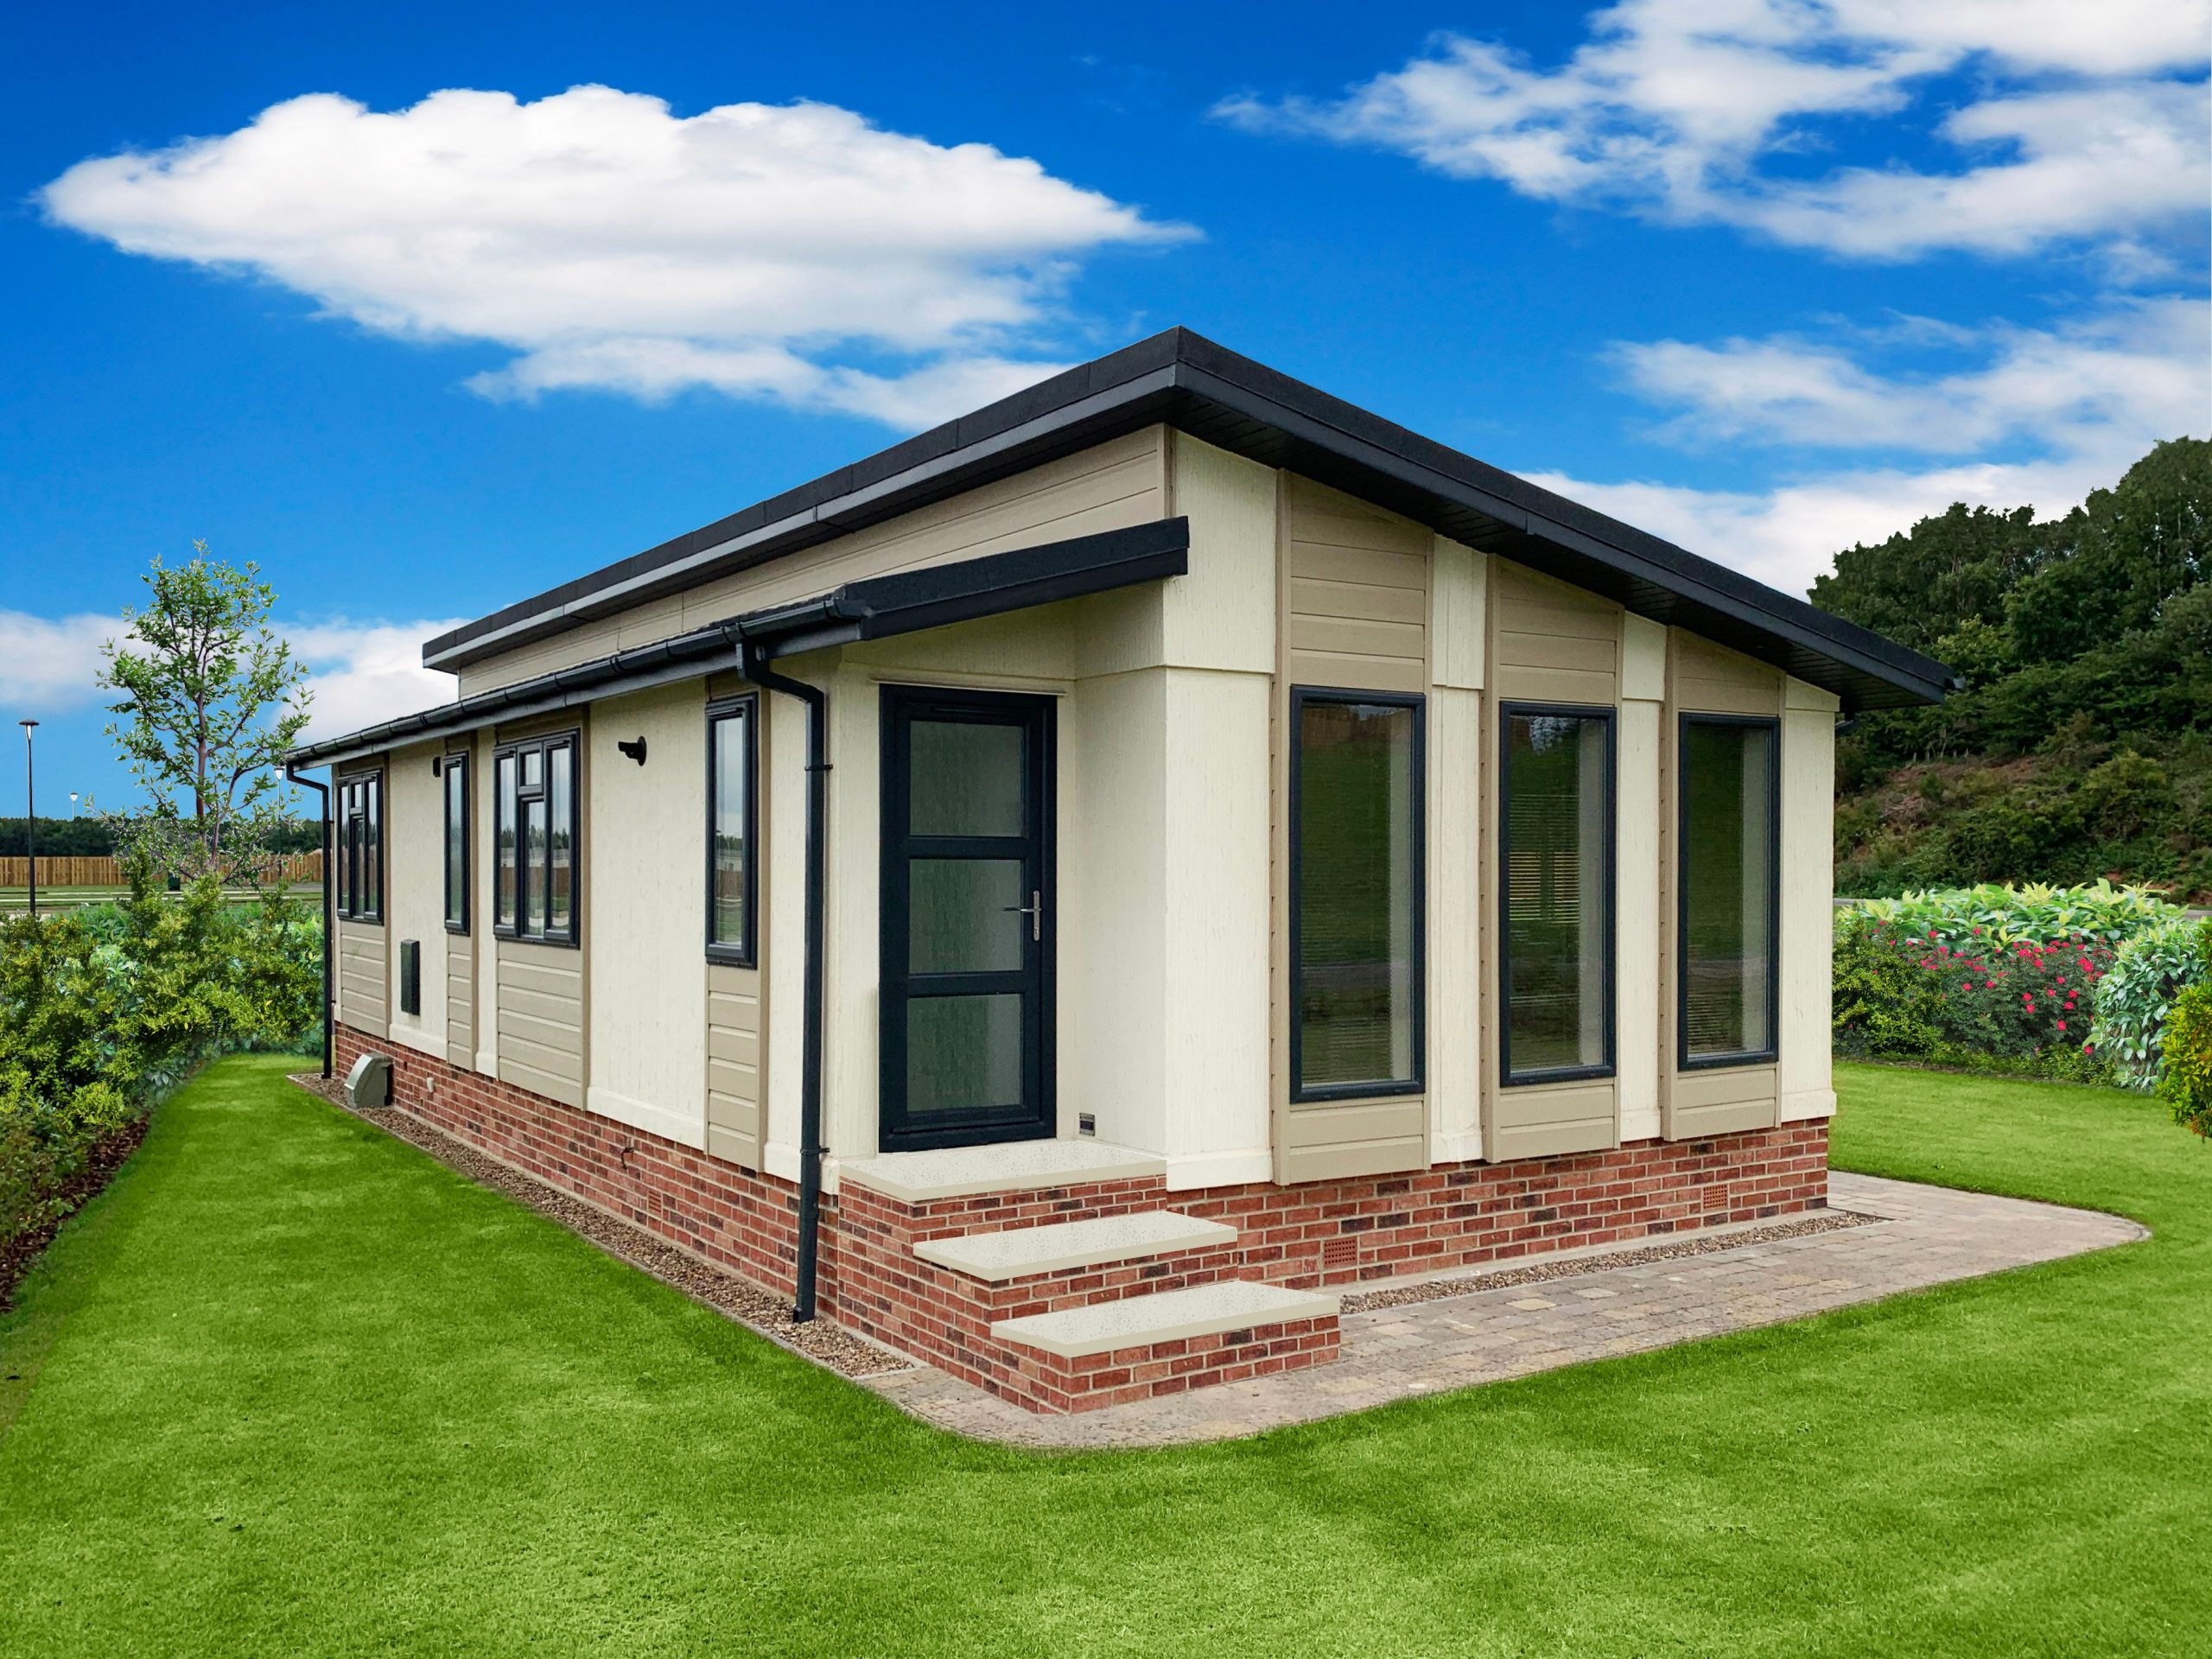 over 50s gated communities uk